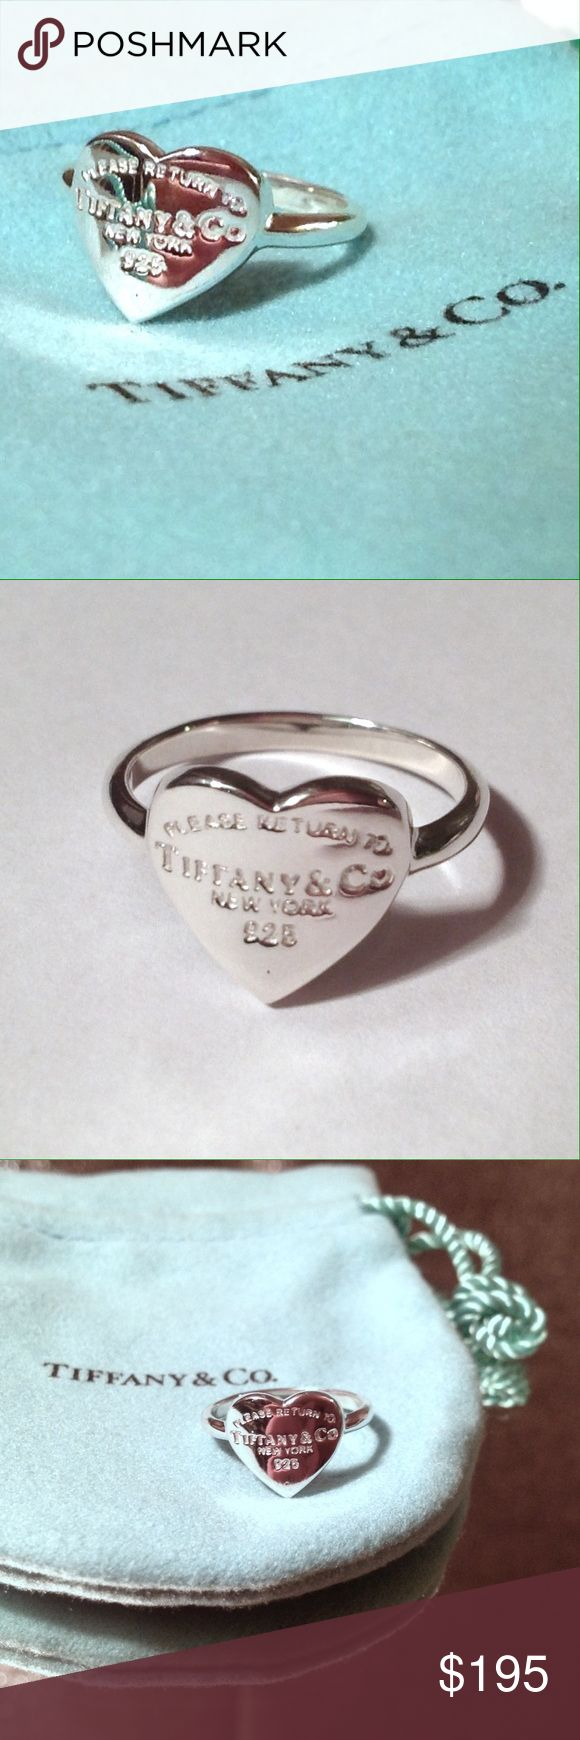 """Tiffany & Co. Heart Ring """"Return to Tiffany"""" NEW Tiffany & Co - Heart Ring - Return to Tiffany's.  New Sterling Silver 925 Tiffany & Co. ring.  Heart shape with """"IF FOUND PLEASE RETURN TO TIFFANY & CO. NEW YORK"""" engraved on the front. Tiffany & Co. jewelry pouch included. New - never worn. Love this style for #valentinesday it's a classic and no longer available through their website. Tiffany & Co. Jewelry Rings"""